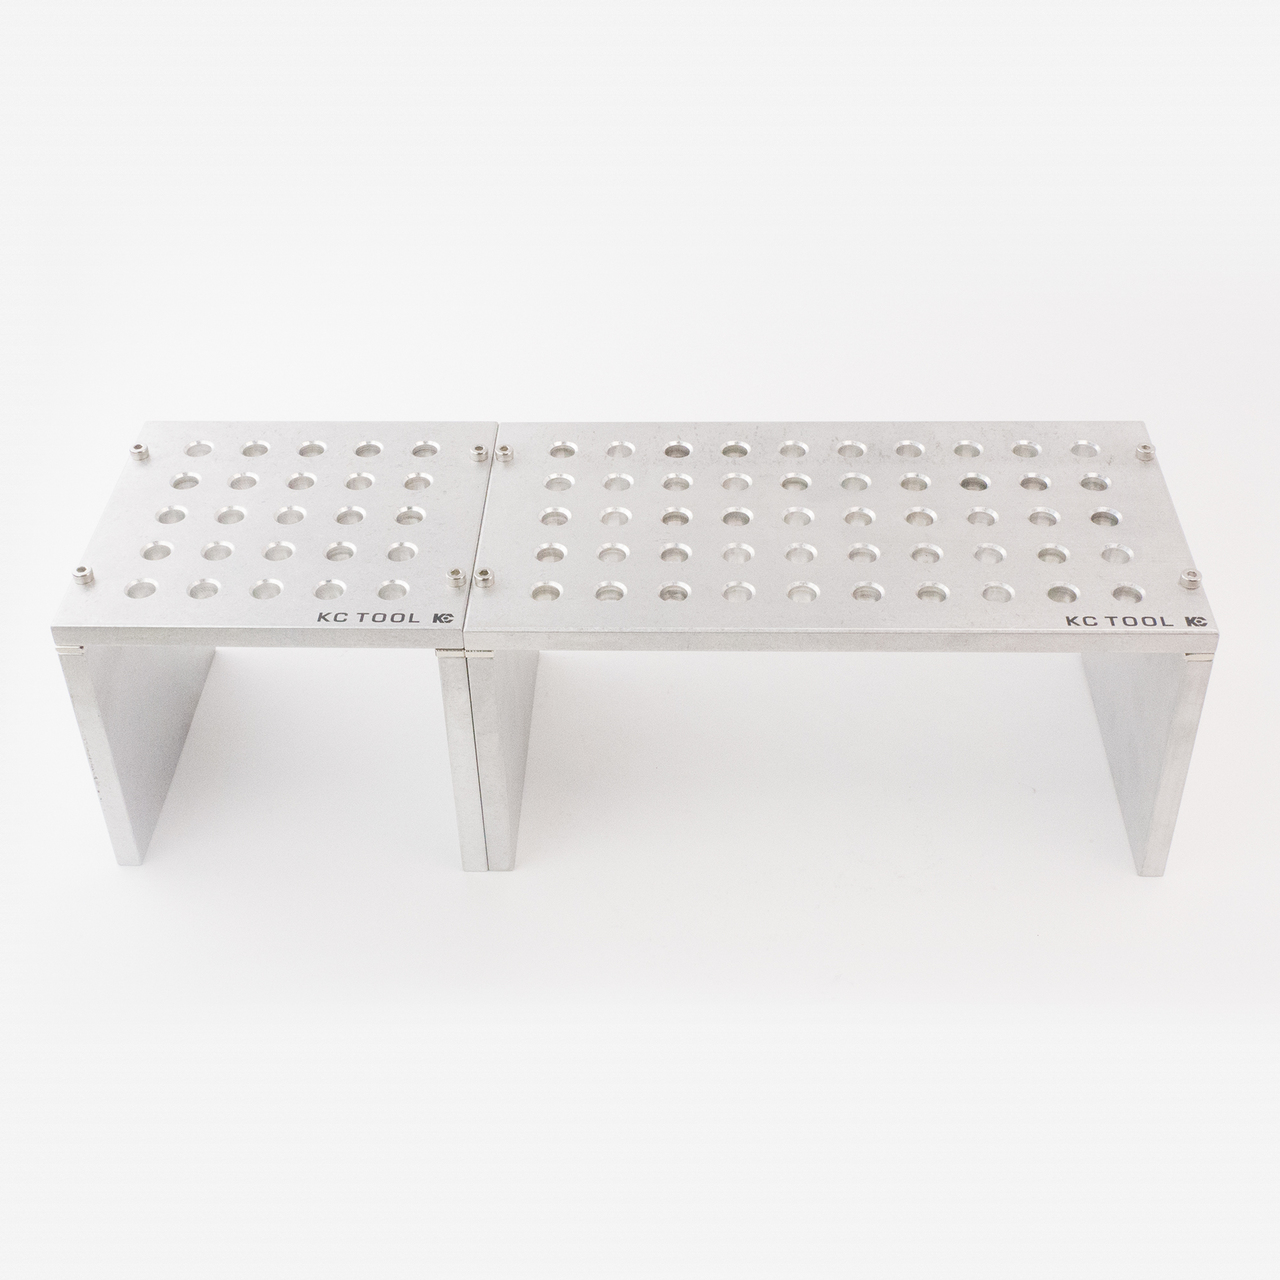 For Aluminum Bench Top Stand - KC Tool